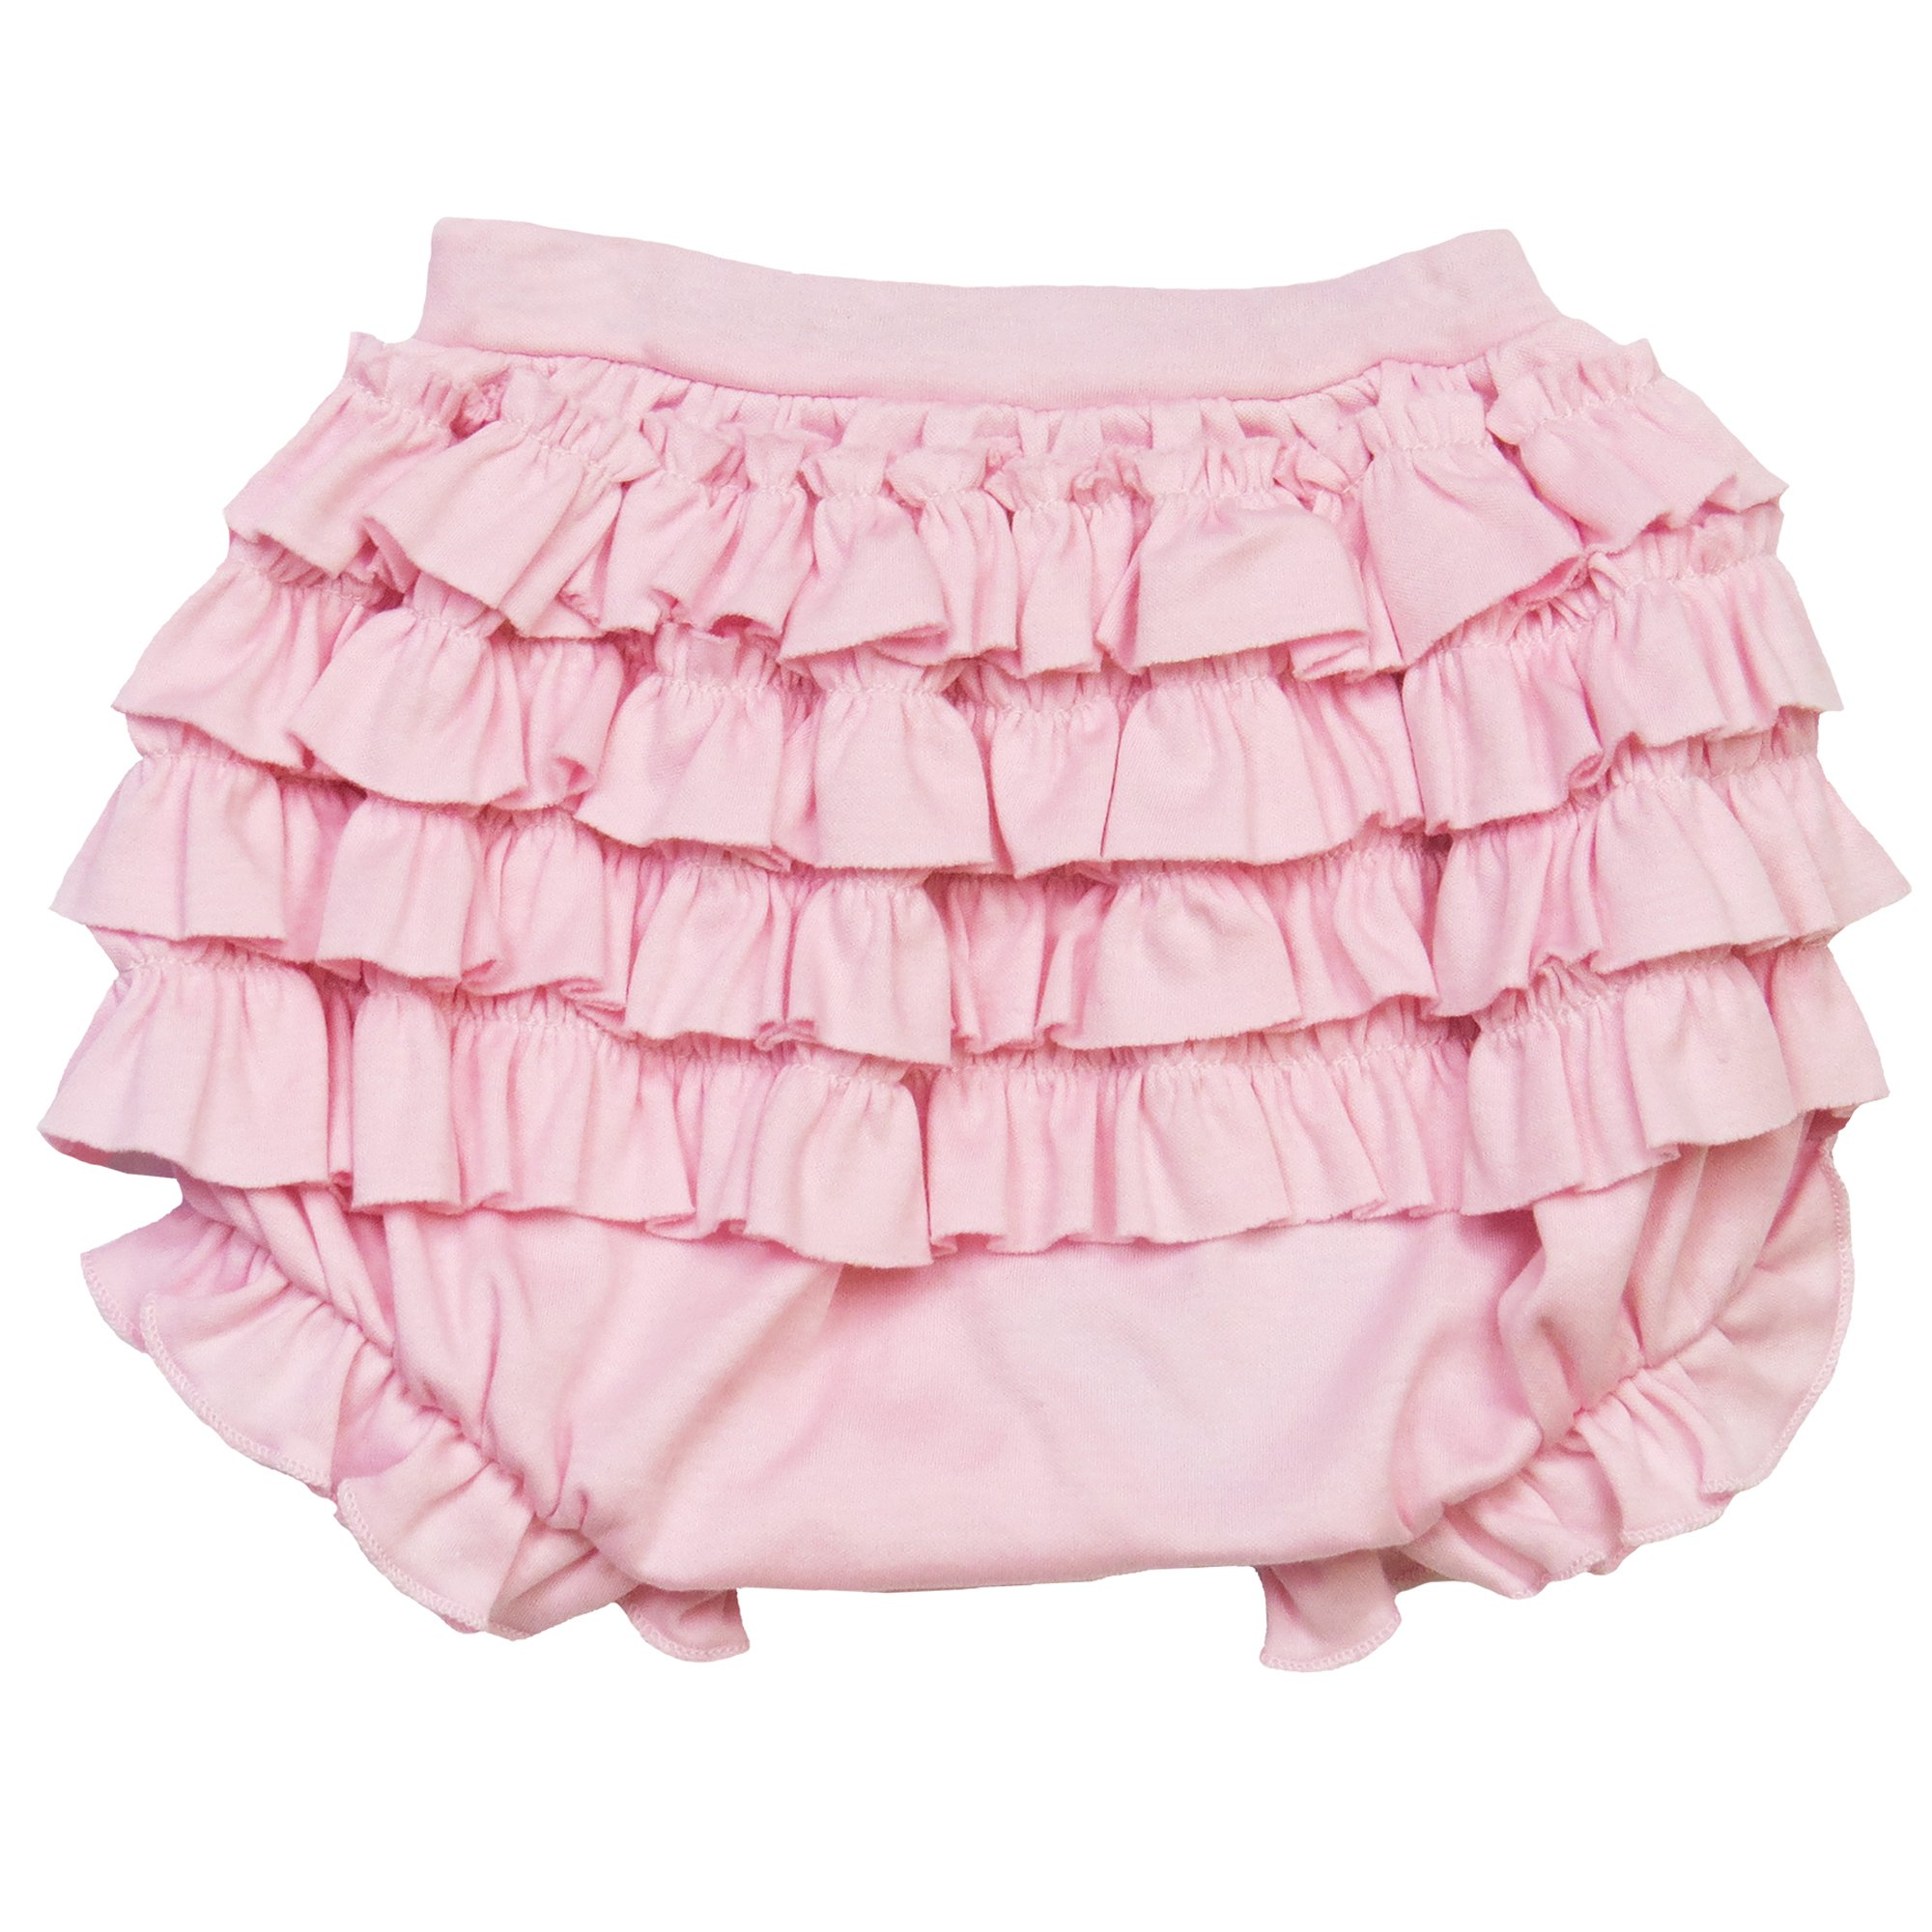 Lemon Loves Layette Bonnie Bloomers Pink Diaper Covers